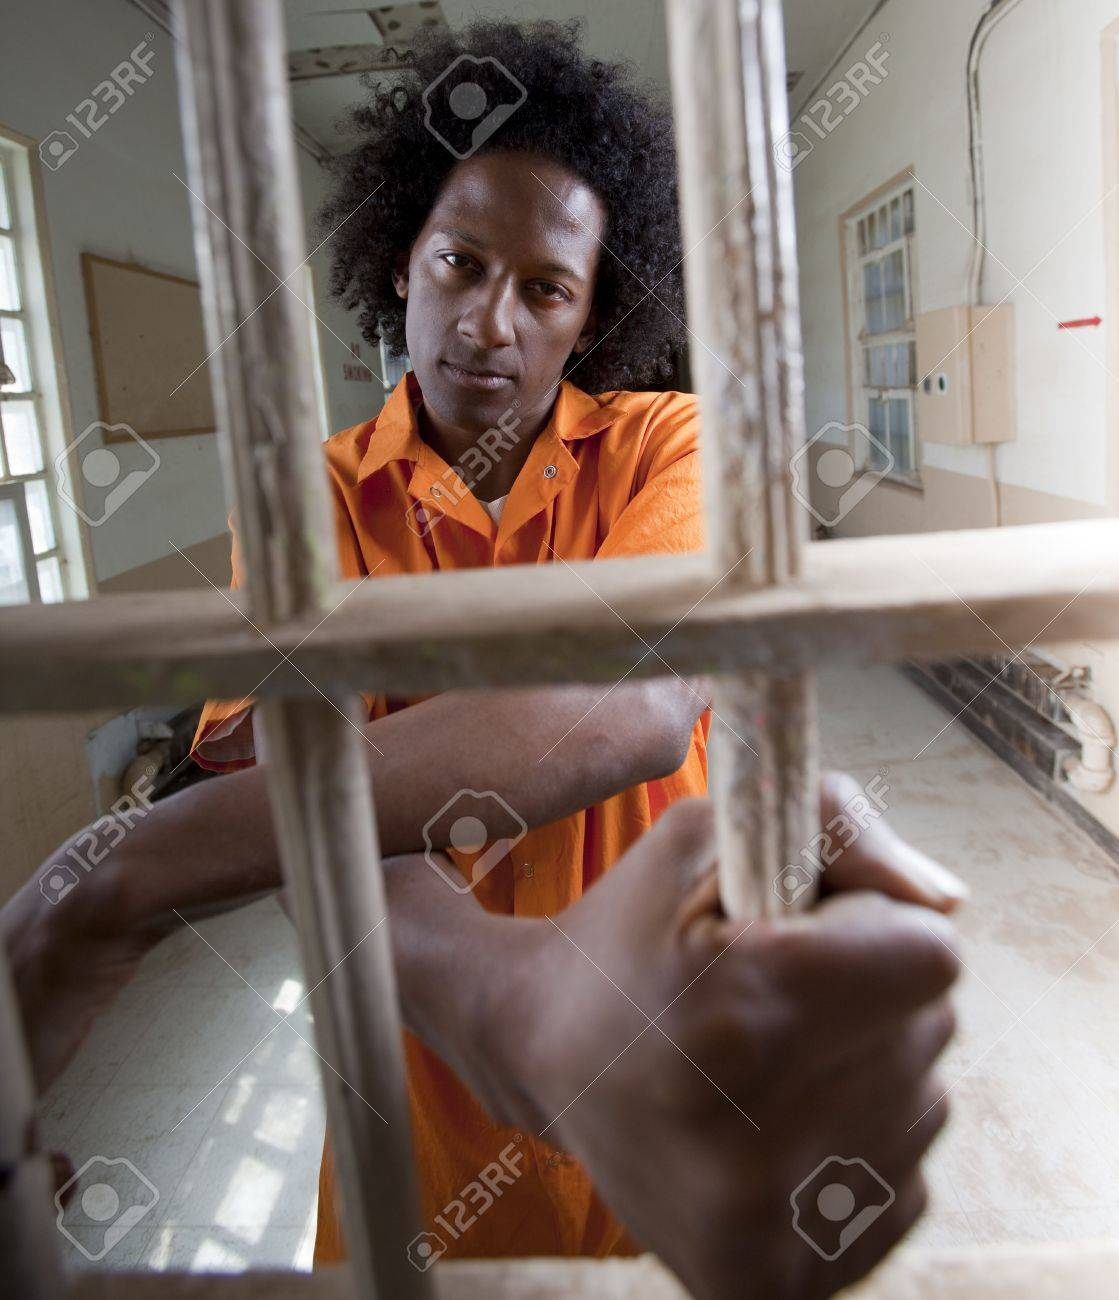 A black man with an afro making various faces and gestures inside a federal prison Stock Photo - 6649717